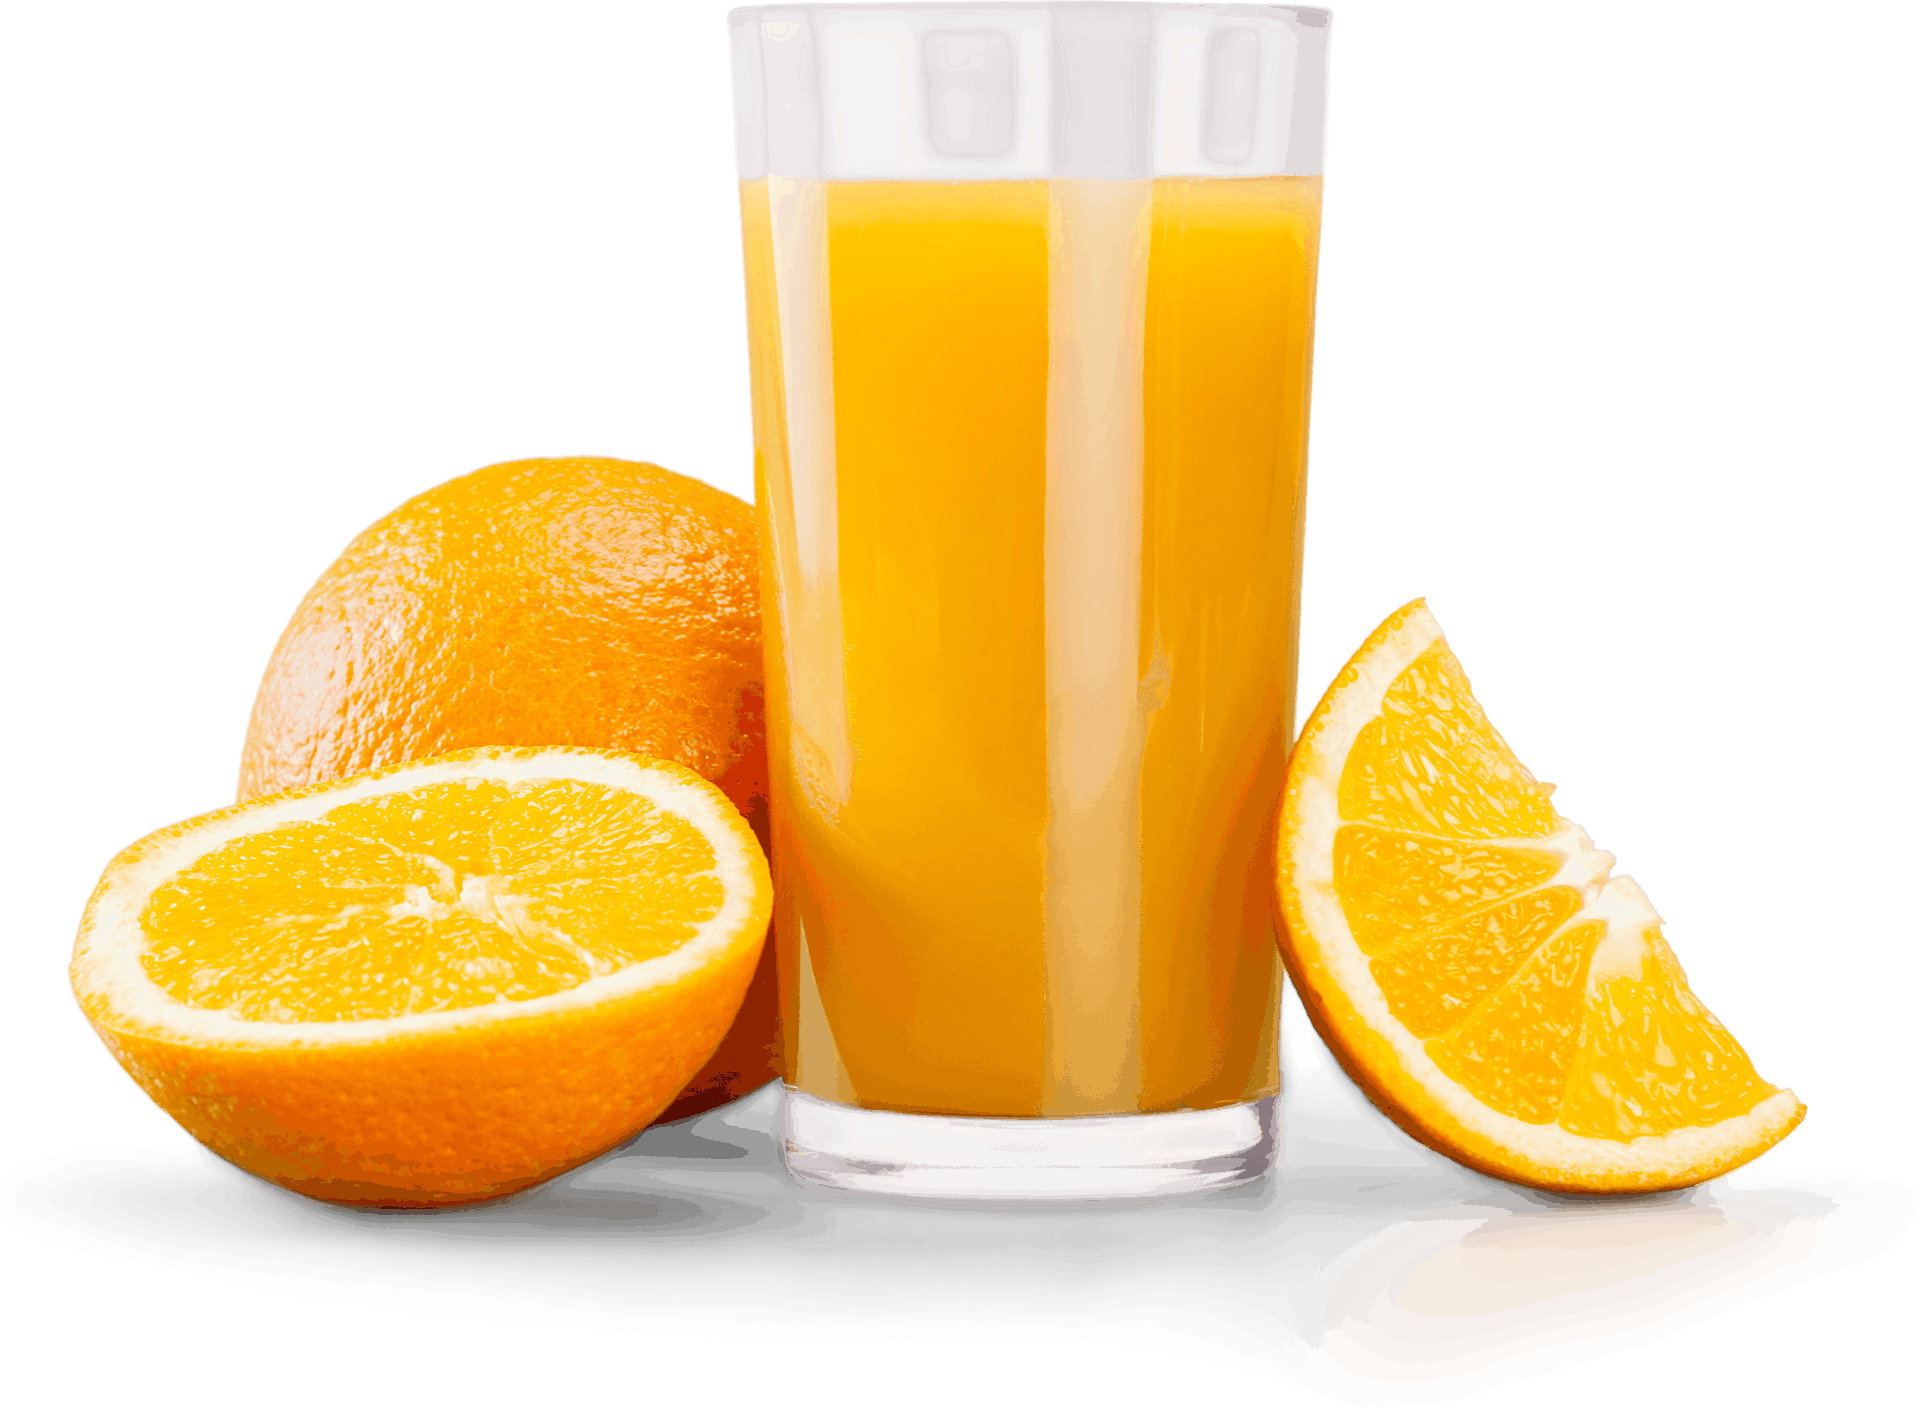 Image of Orange Juice and some pieces of the fruit